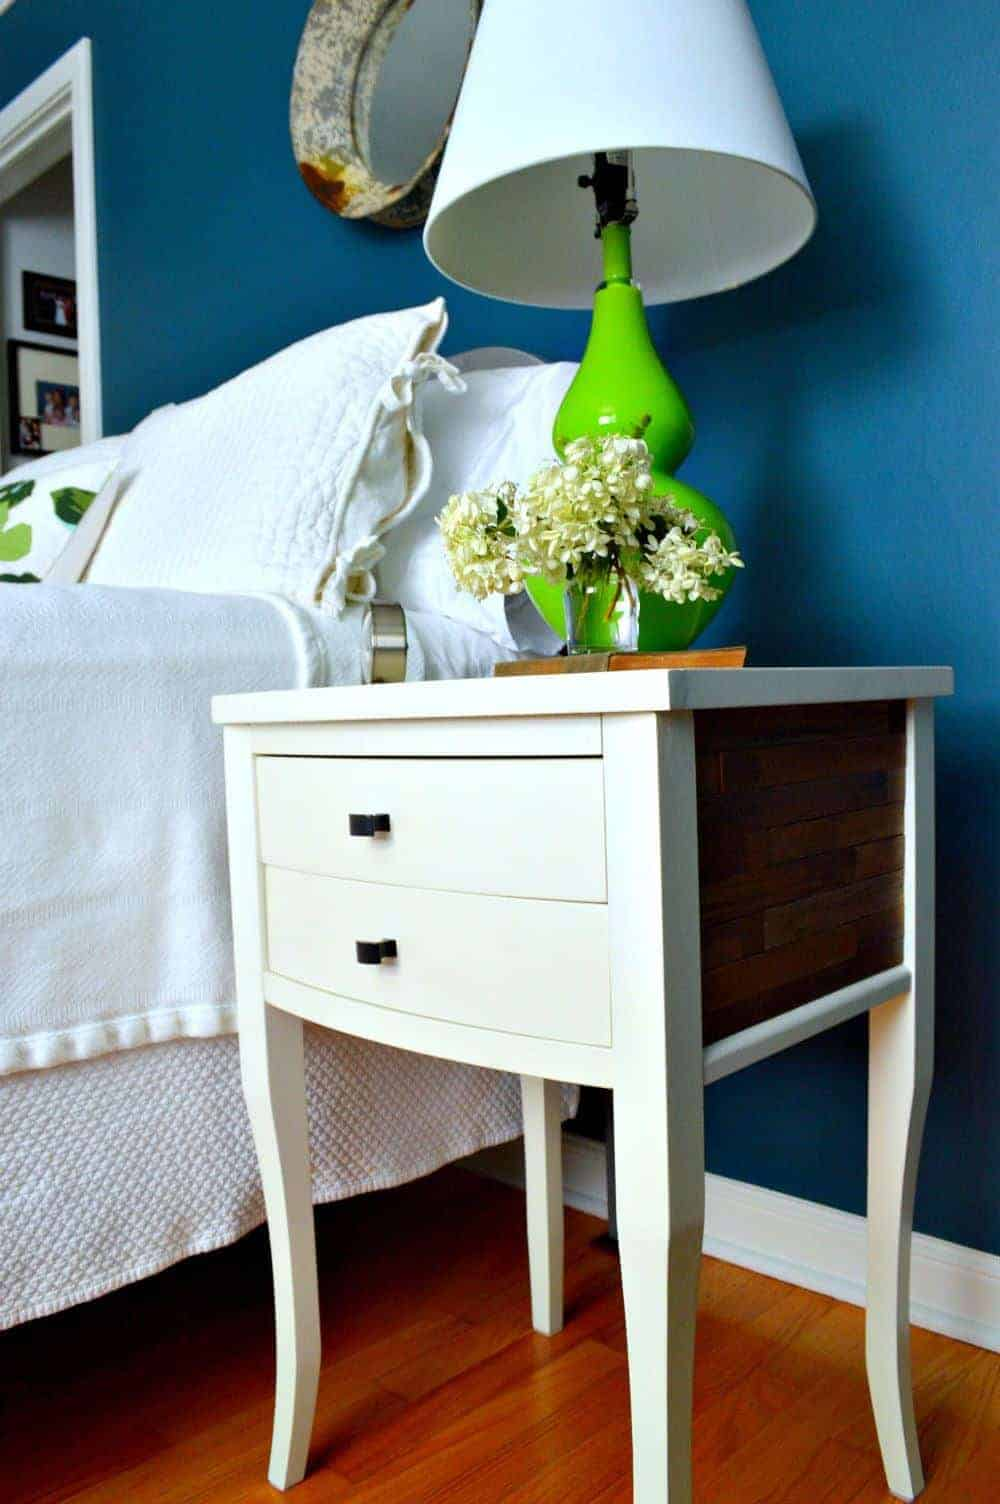 A DIY nightstand with stained wood sticks on the side next to a bed